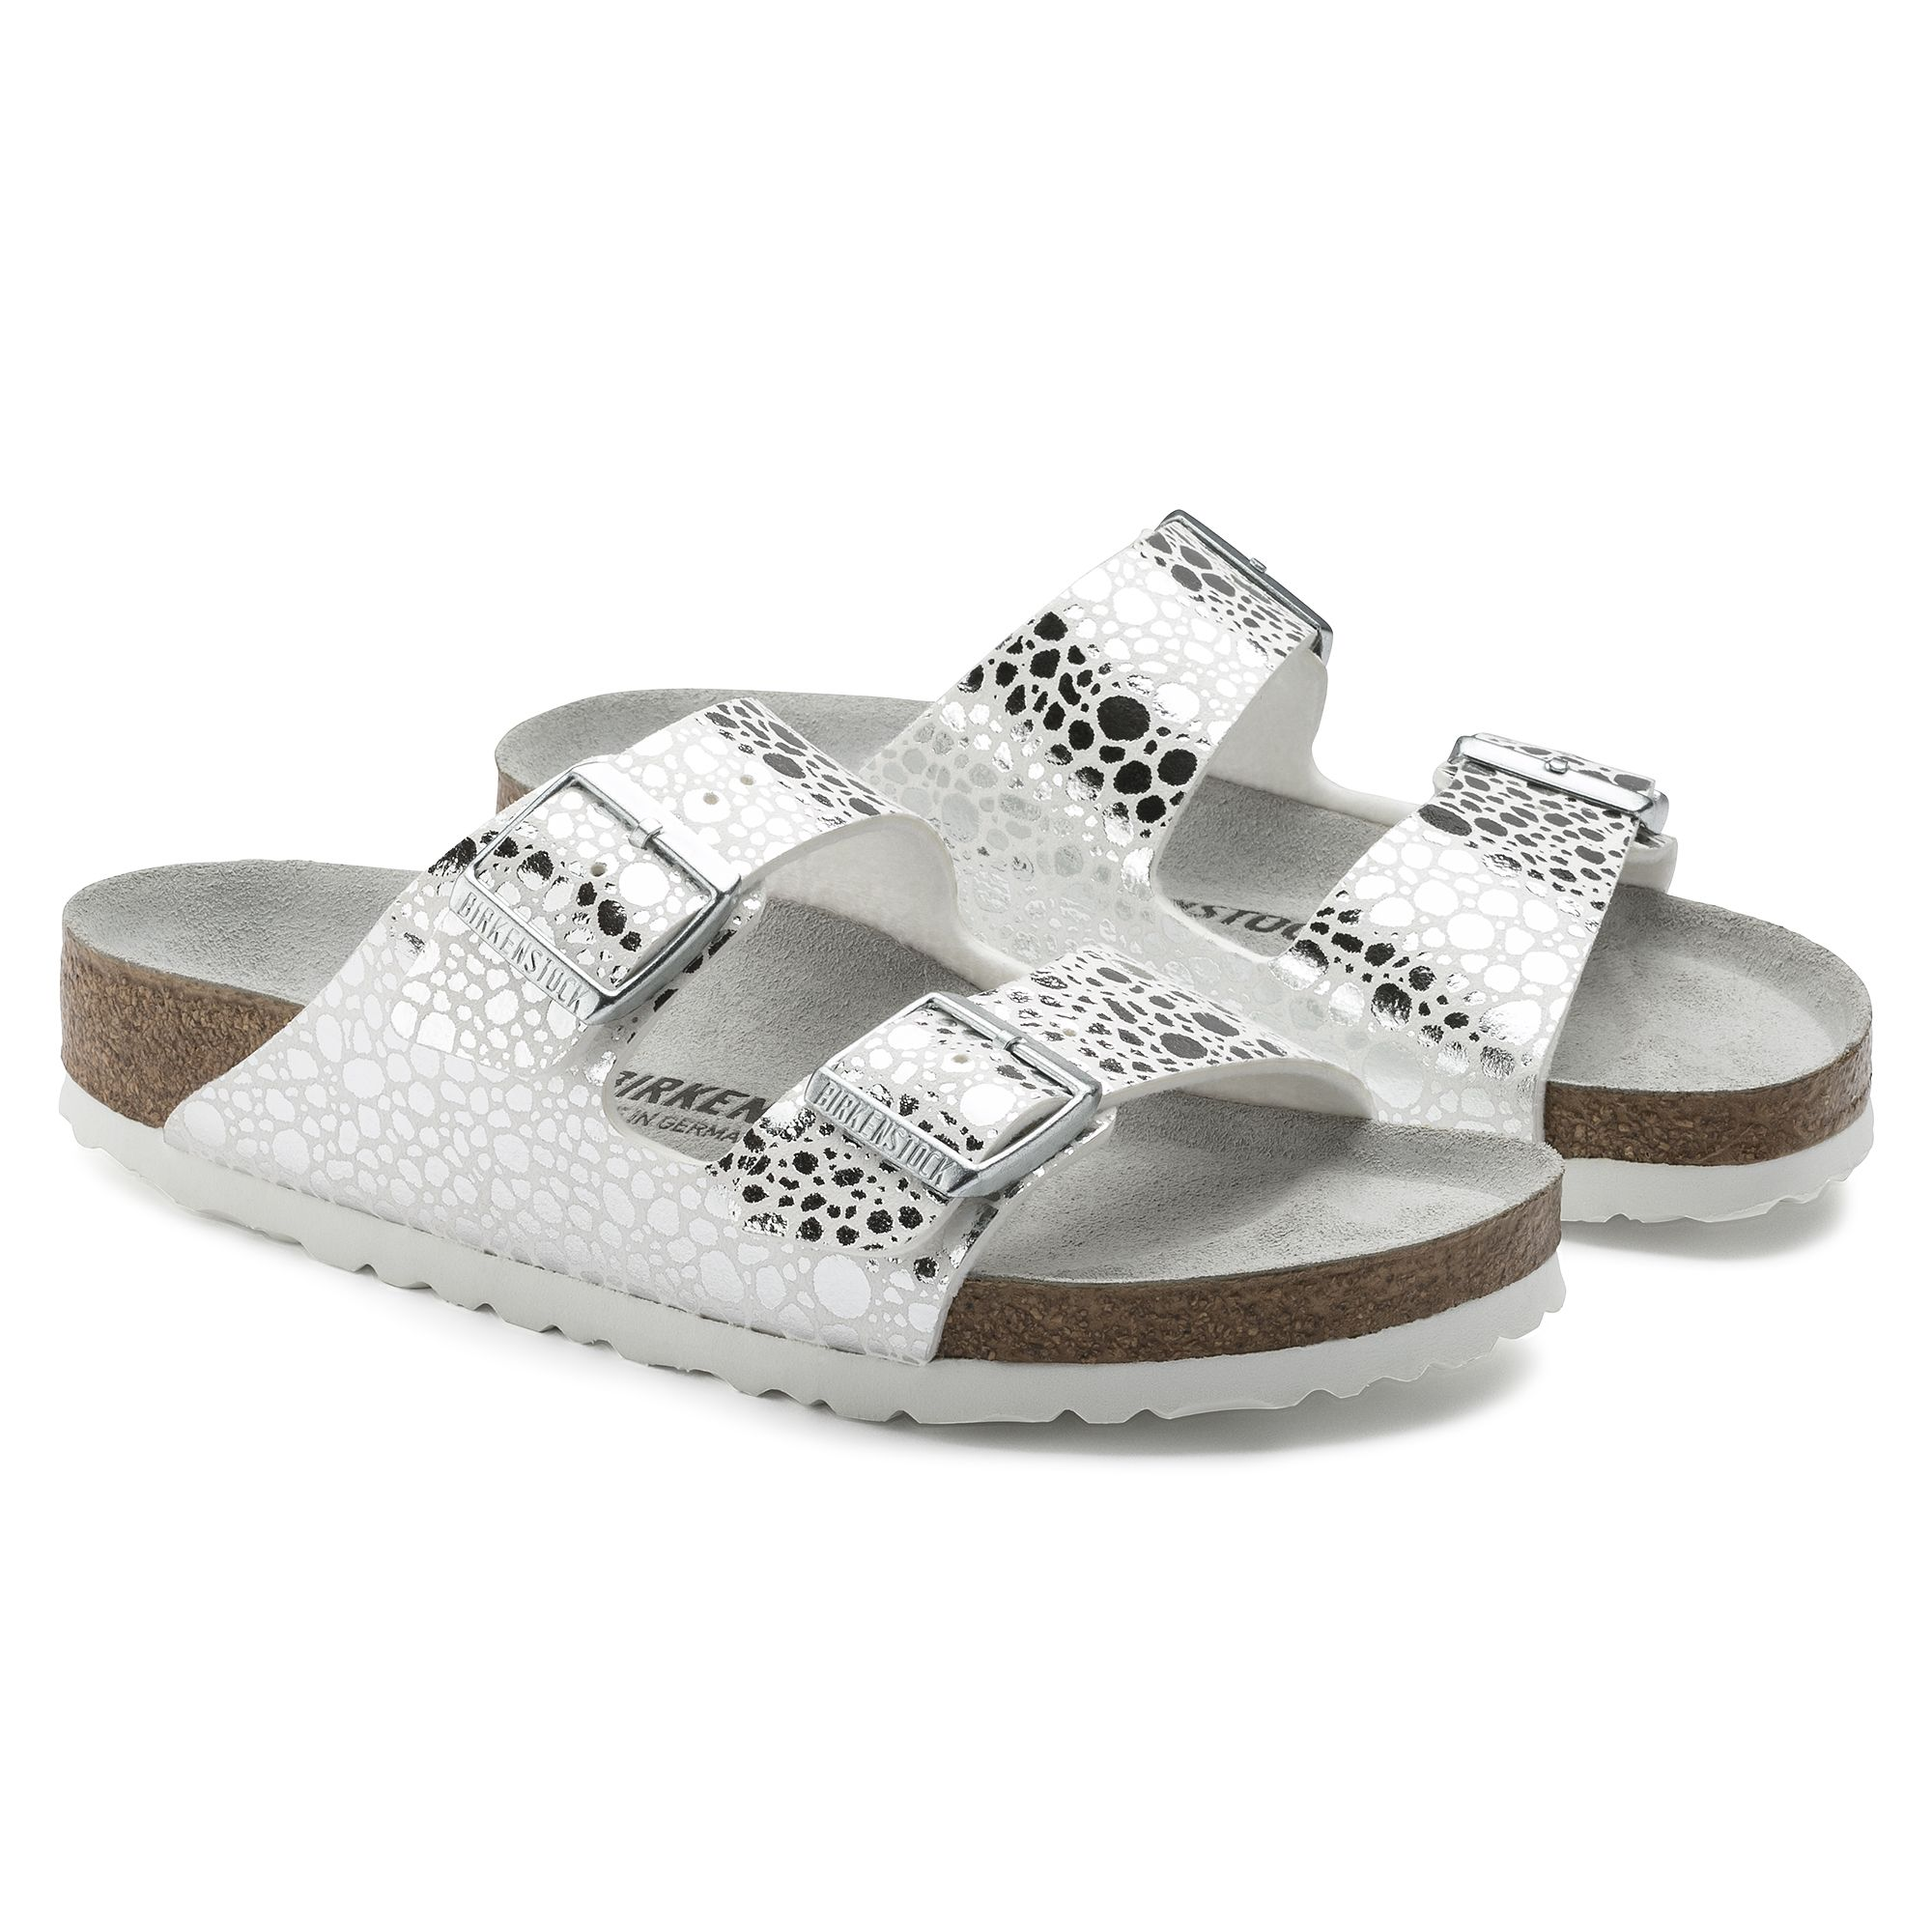 Arizona Birko Flor | Birkenstock, Arizona, Birkenstock arizona